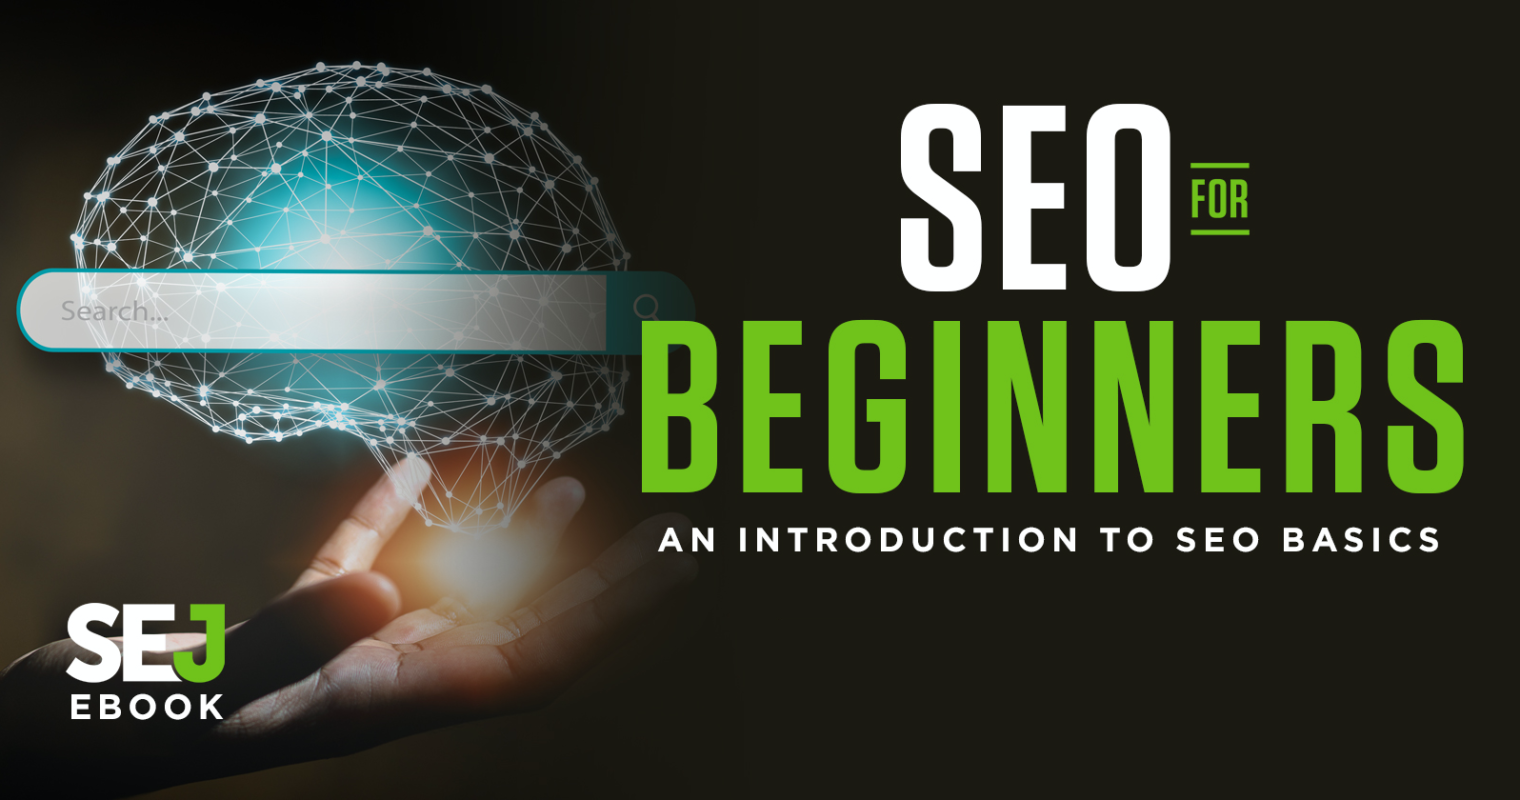 SEO 101: Get Your SEO Guide for Beginners [EBOOK]